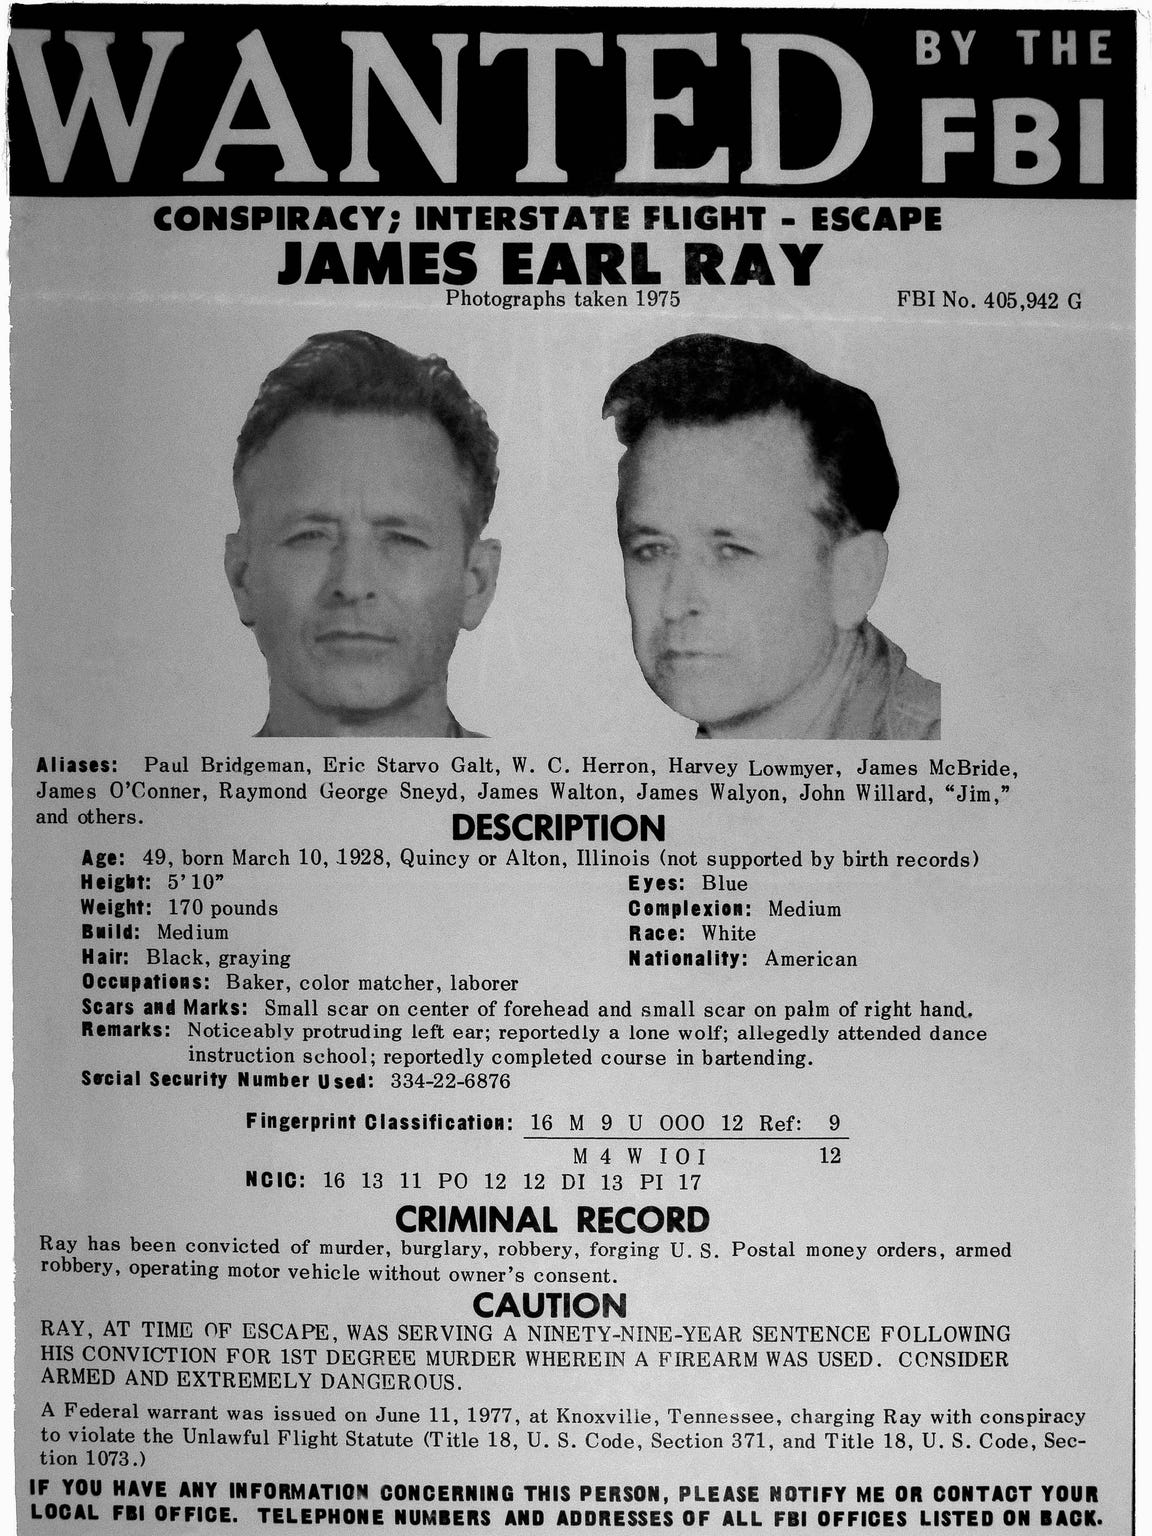 This wanted poster for James Earl Ray was released